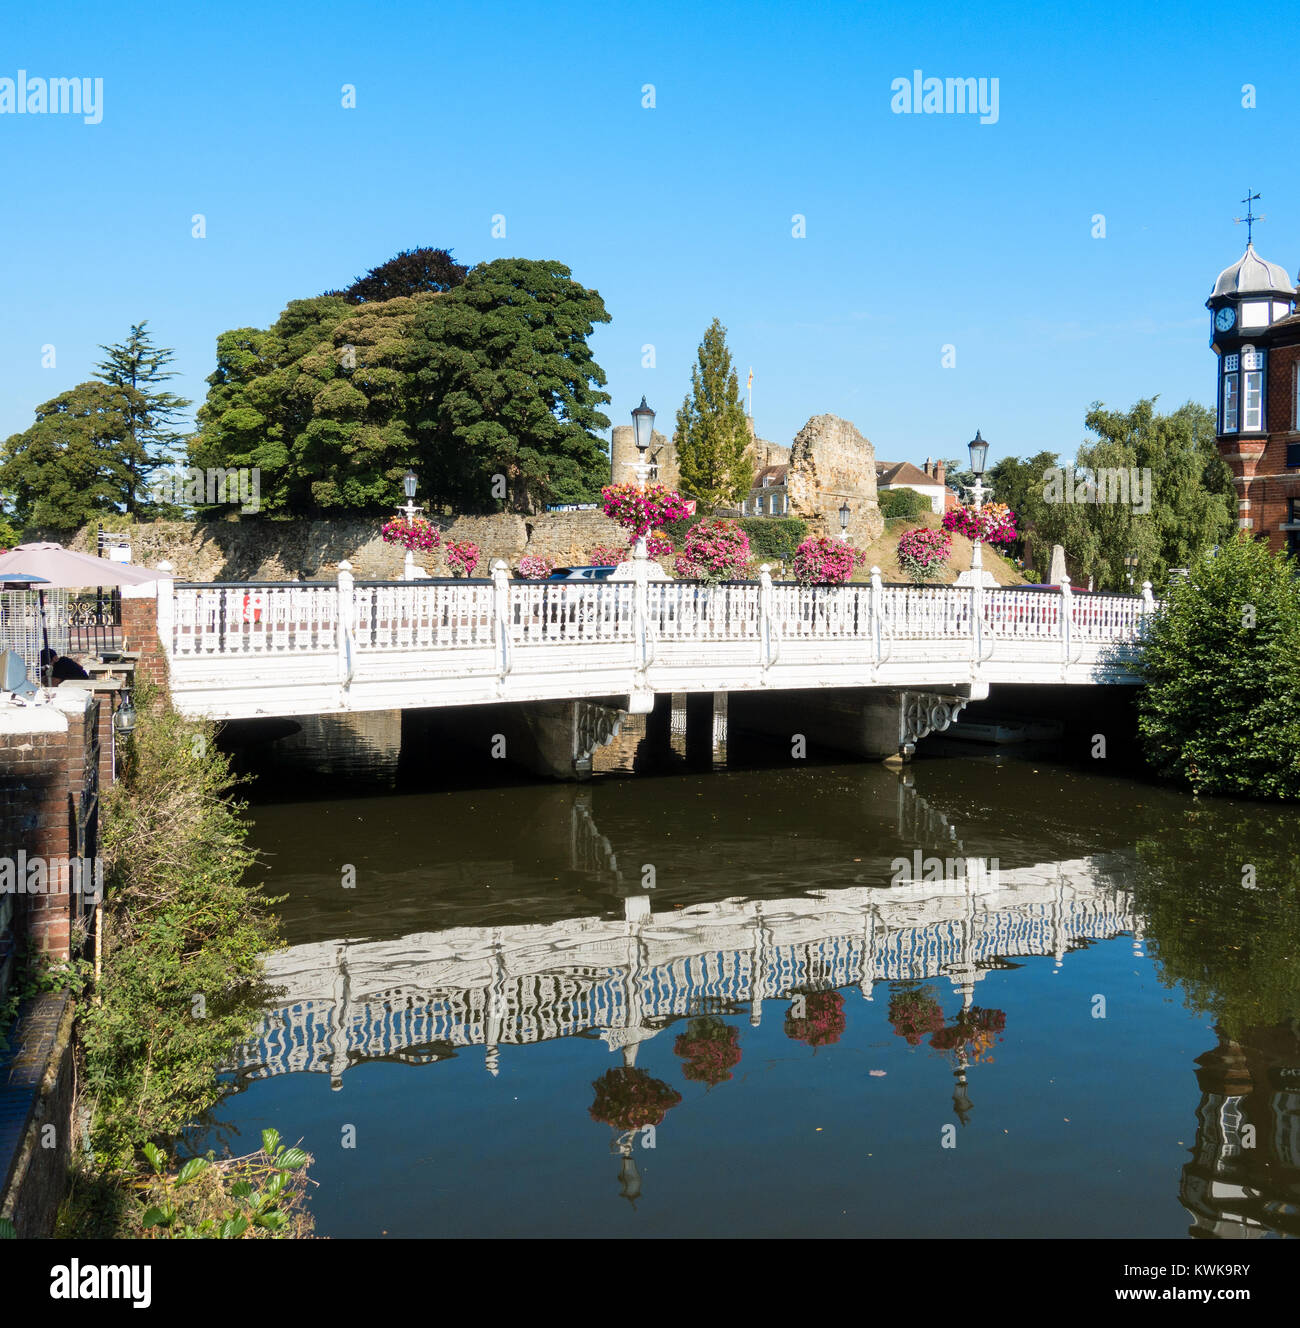 Bridge over River Medway, Tonbridge, Kent, England, UK - Stock Image